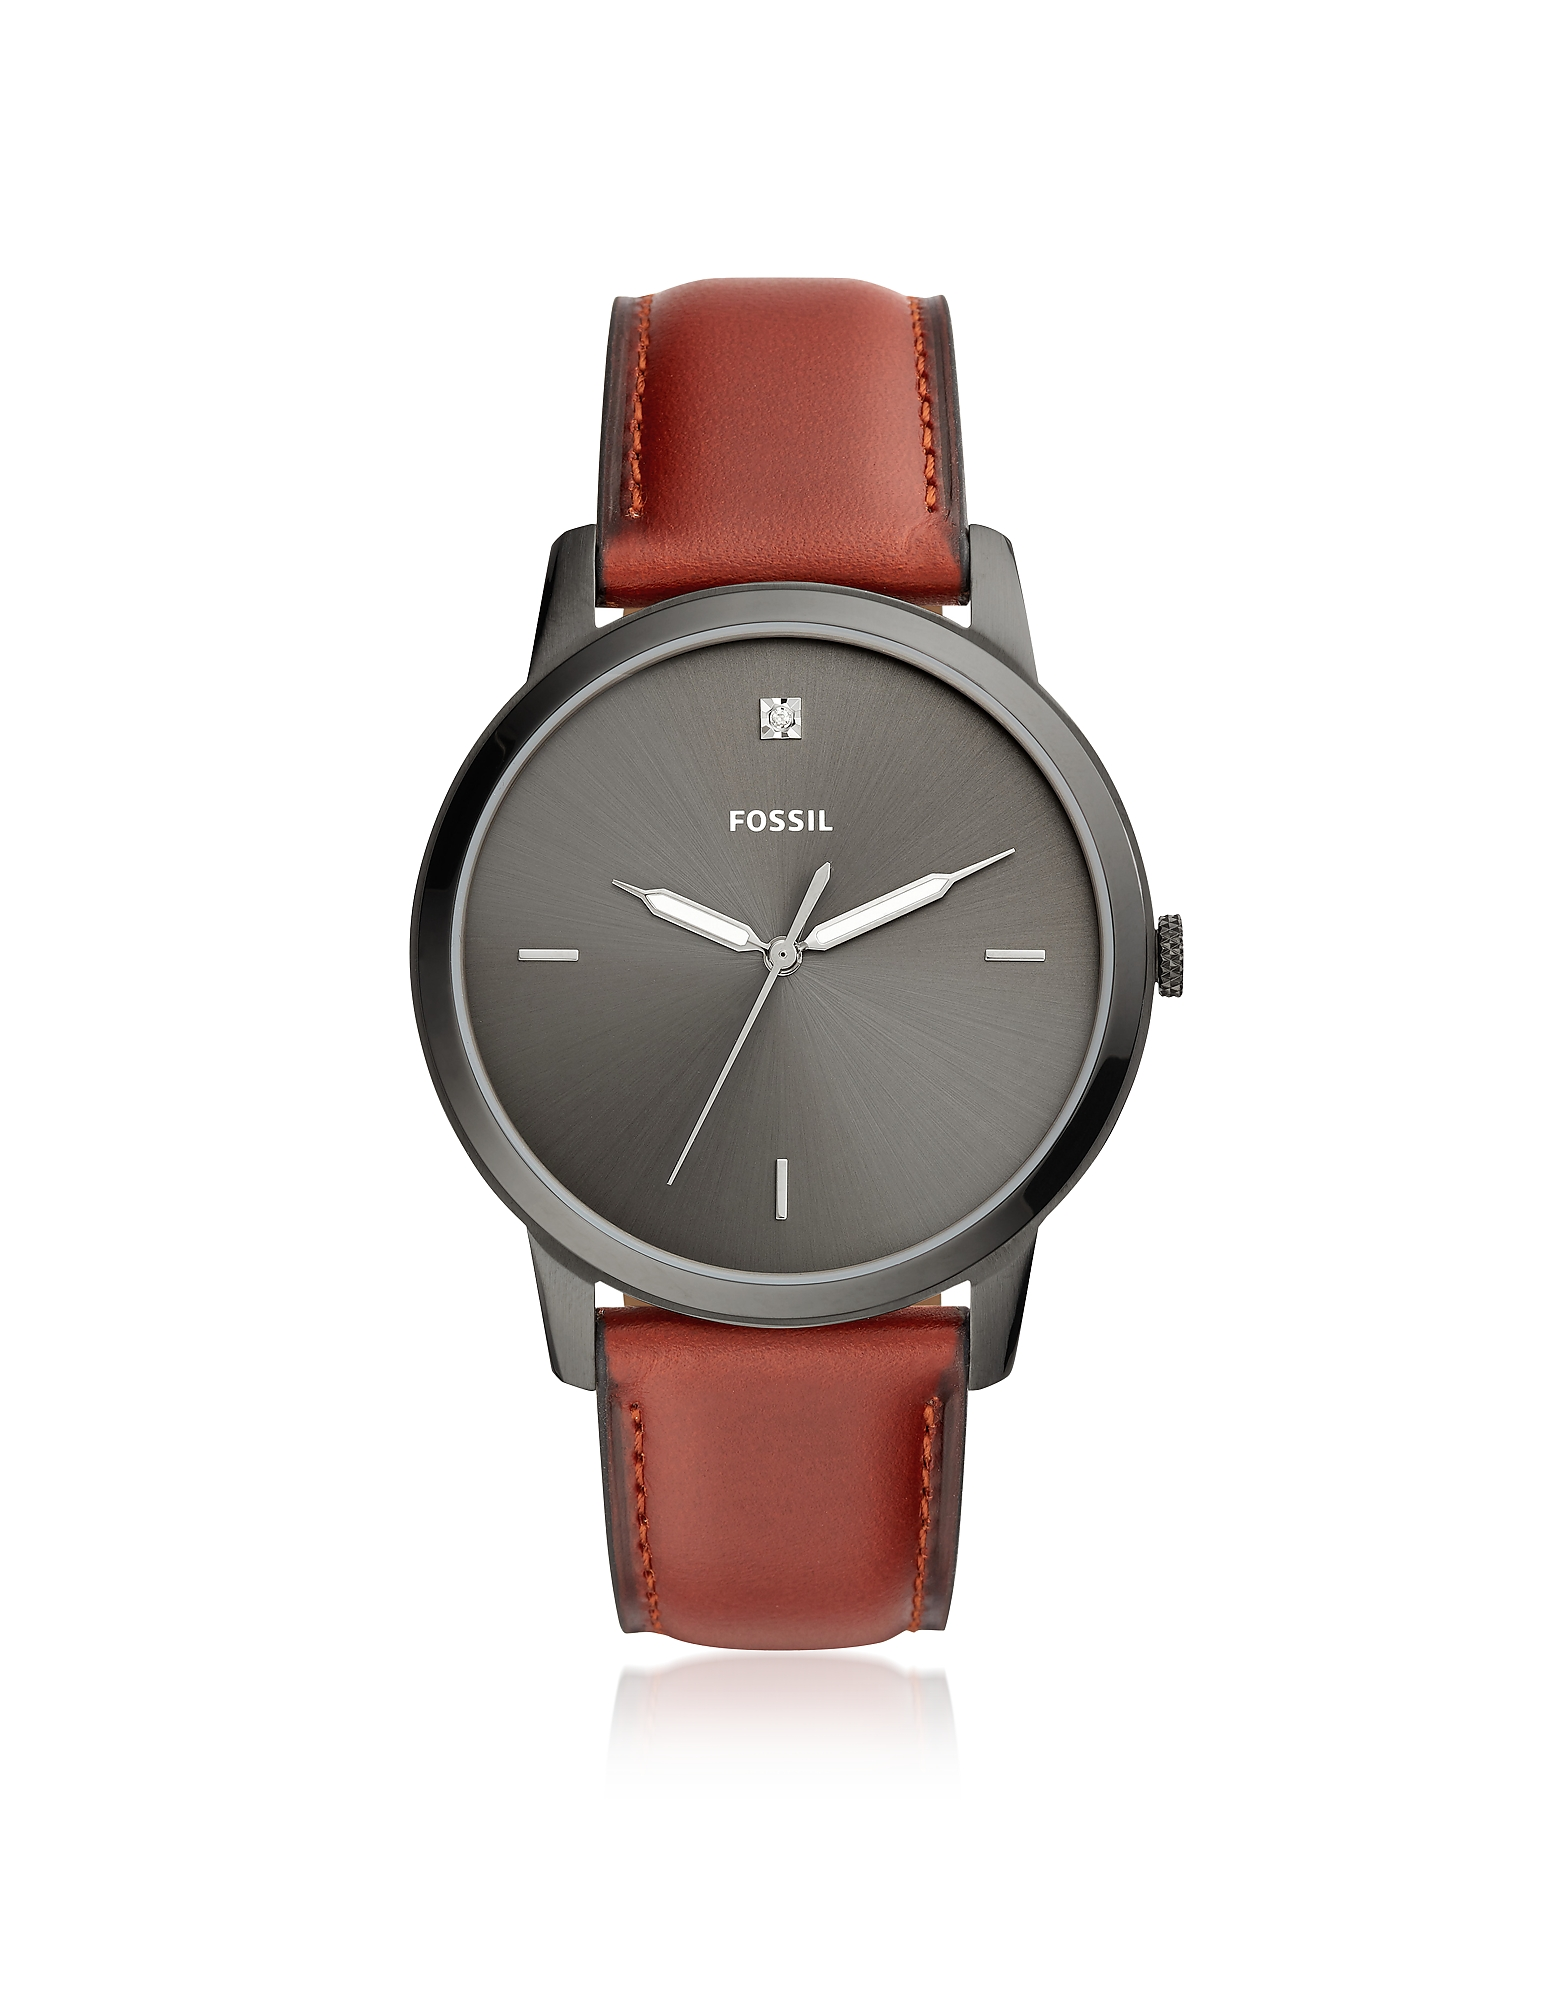 Fossil Men's Watches, The Minimalist Carbon Series Three-Hand Smokey Amber Leather Watch